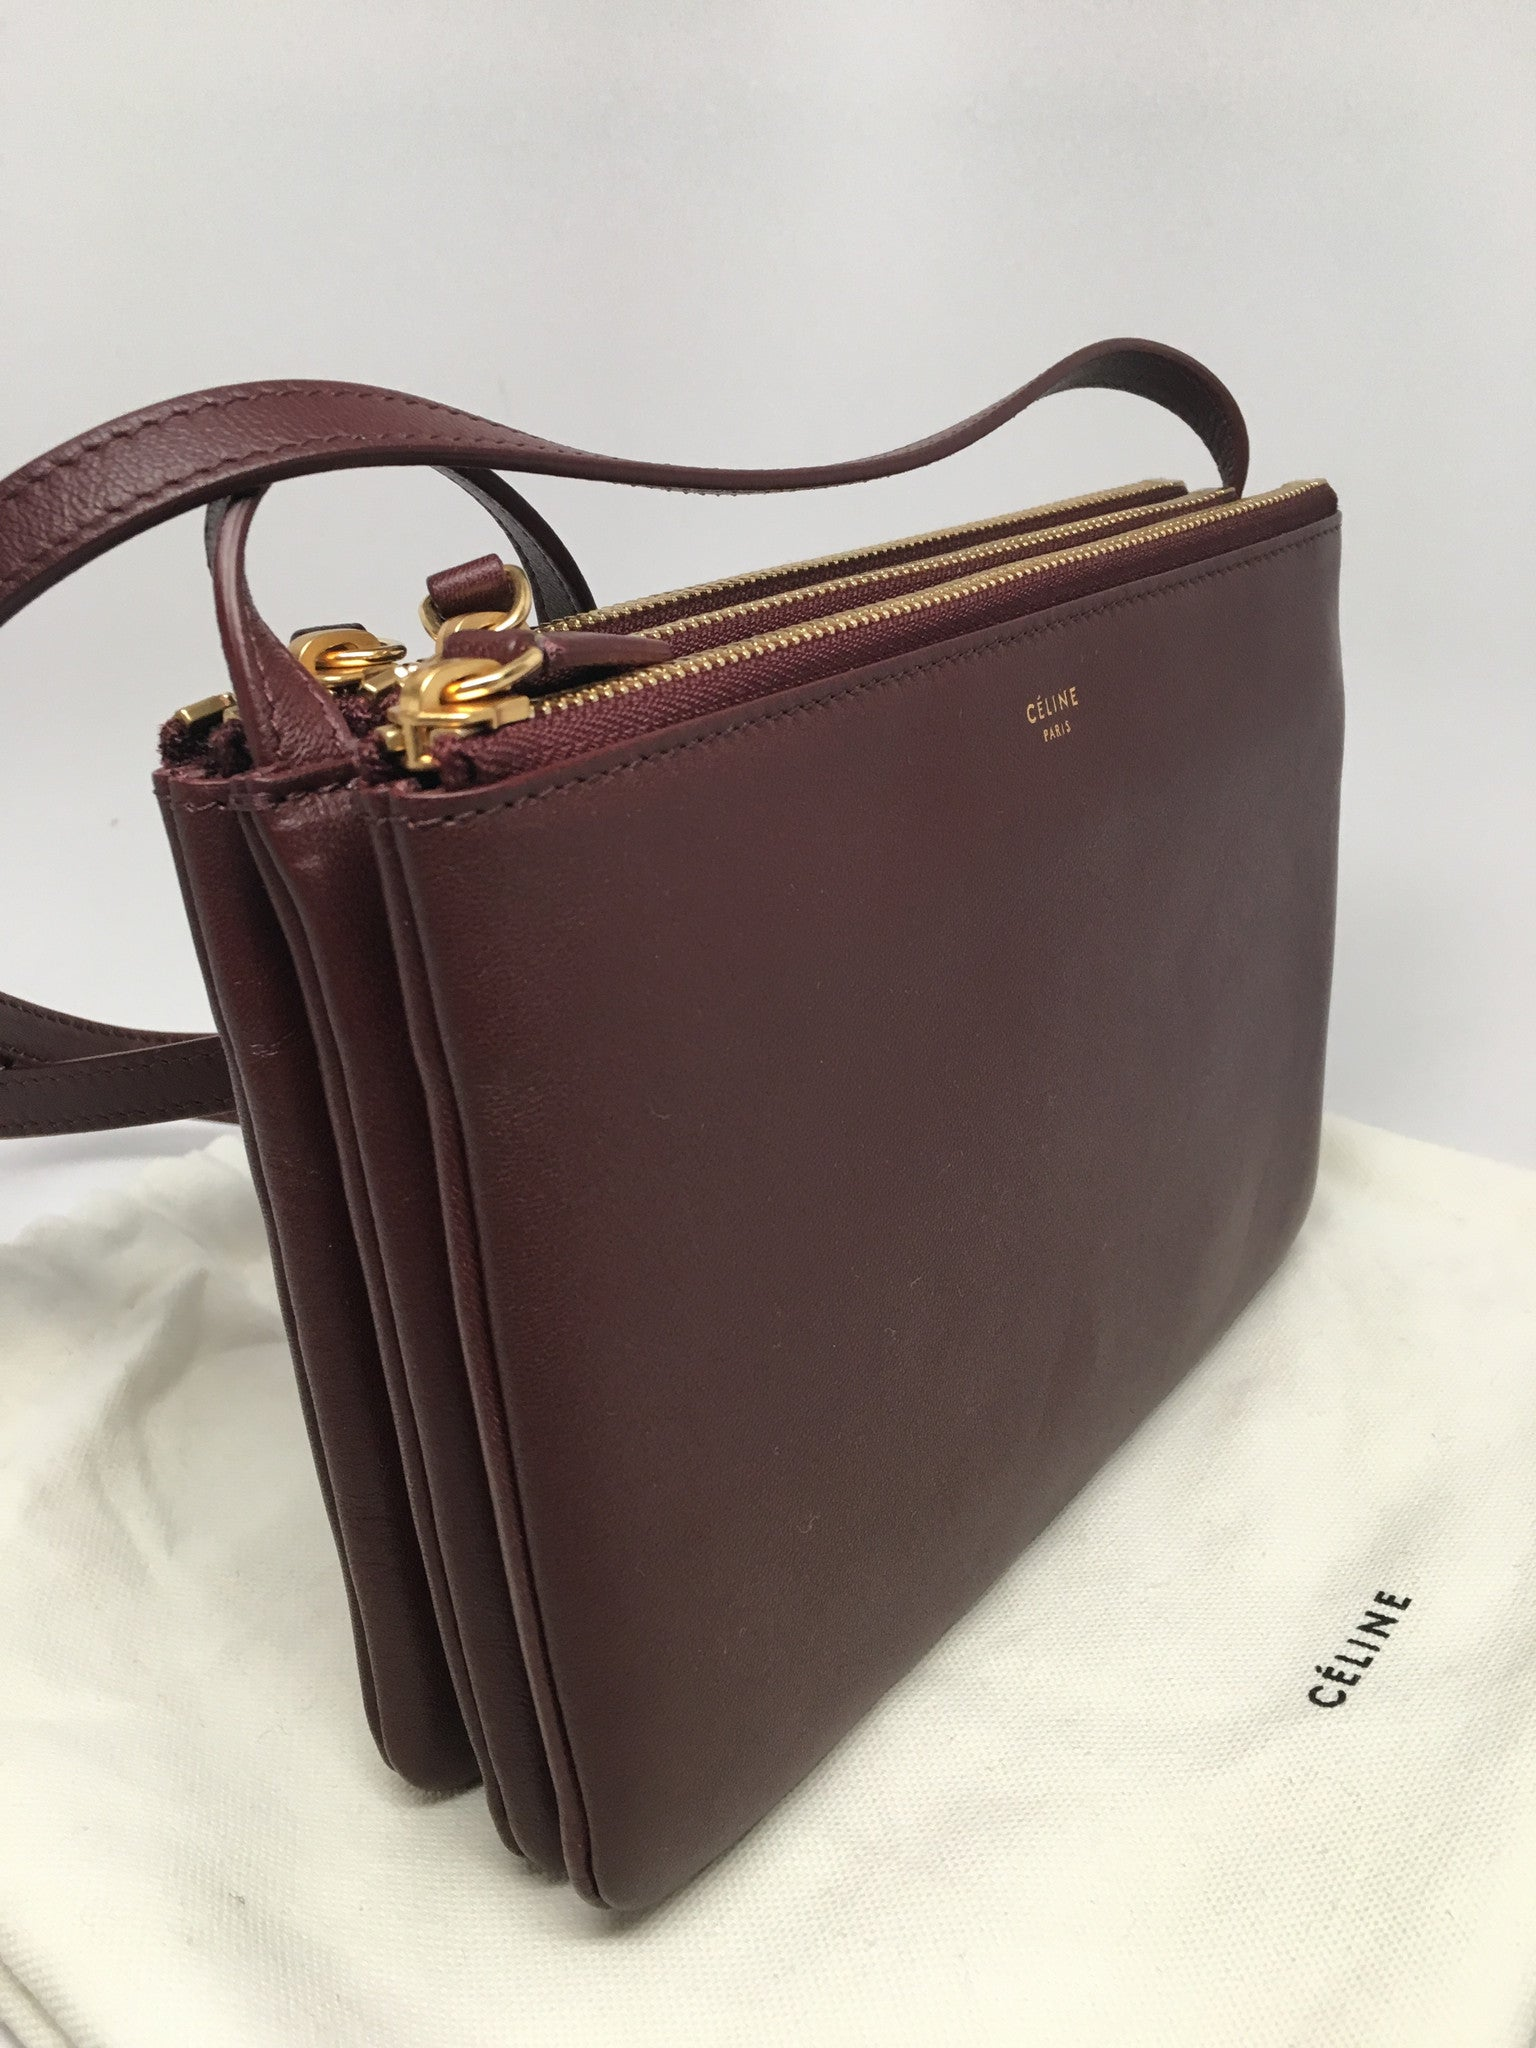 CELINE TRIO BURGUNDY CROSS BODY BAG